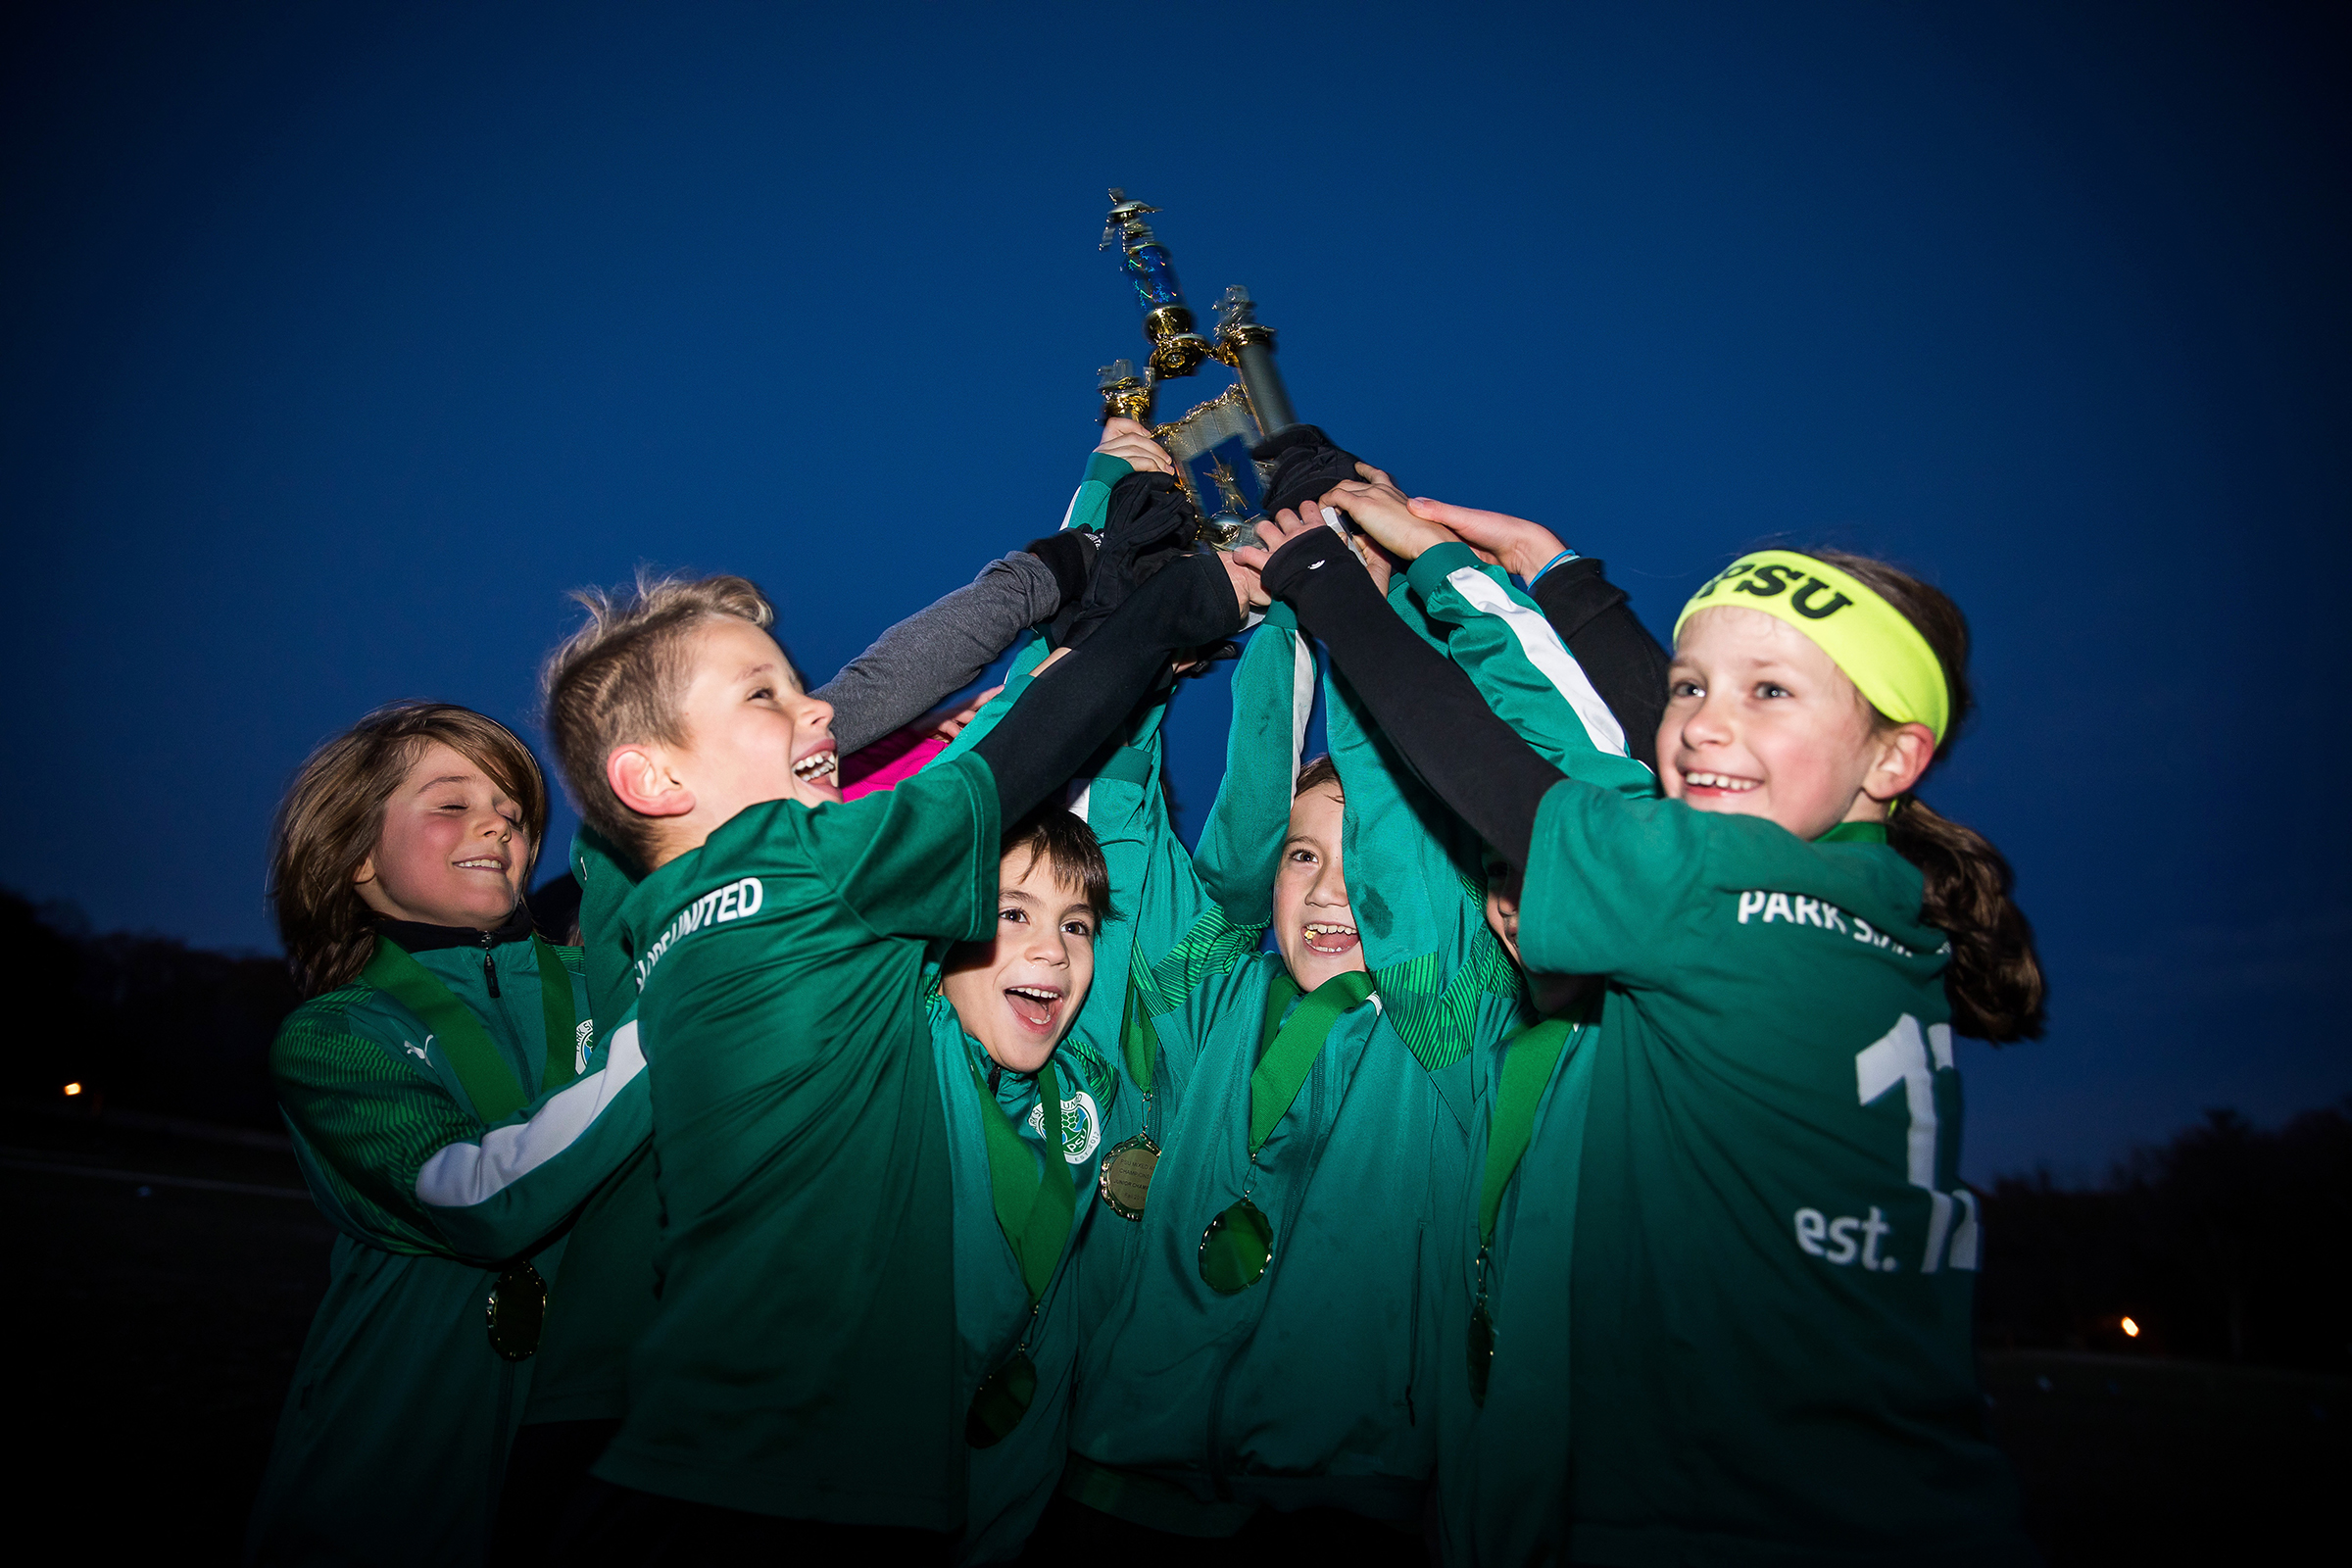 Park Slope United (PSU) 2019 travel players compete in the Mixed-Age Pickup Championship on November 22, 2019 in Prospect Park, Brooklyn, NY